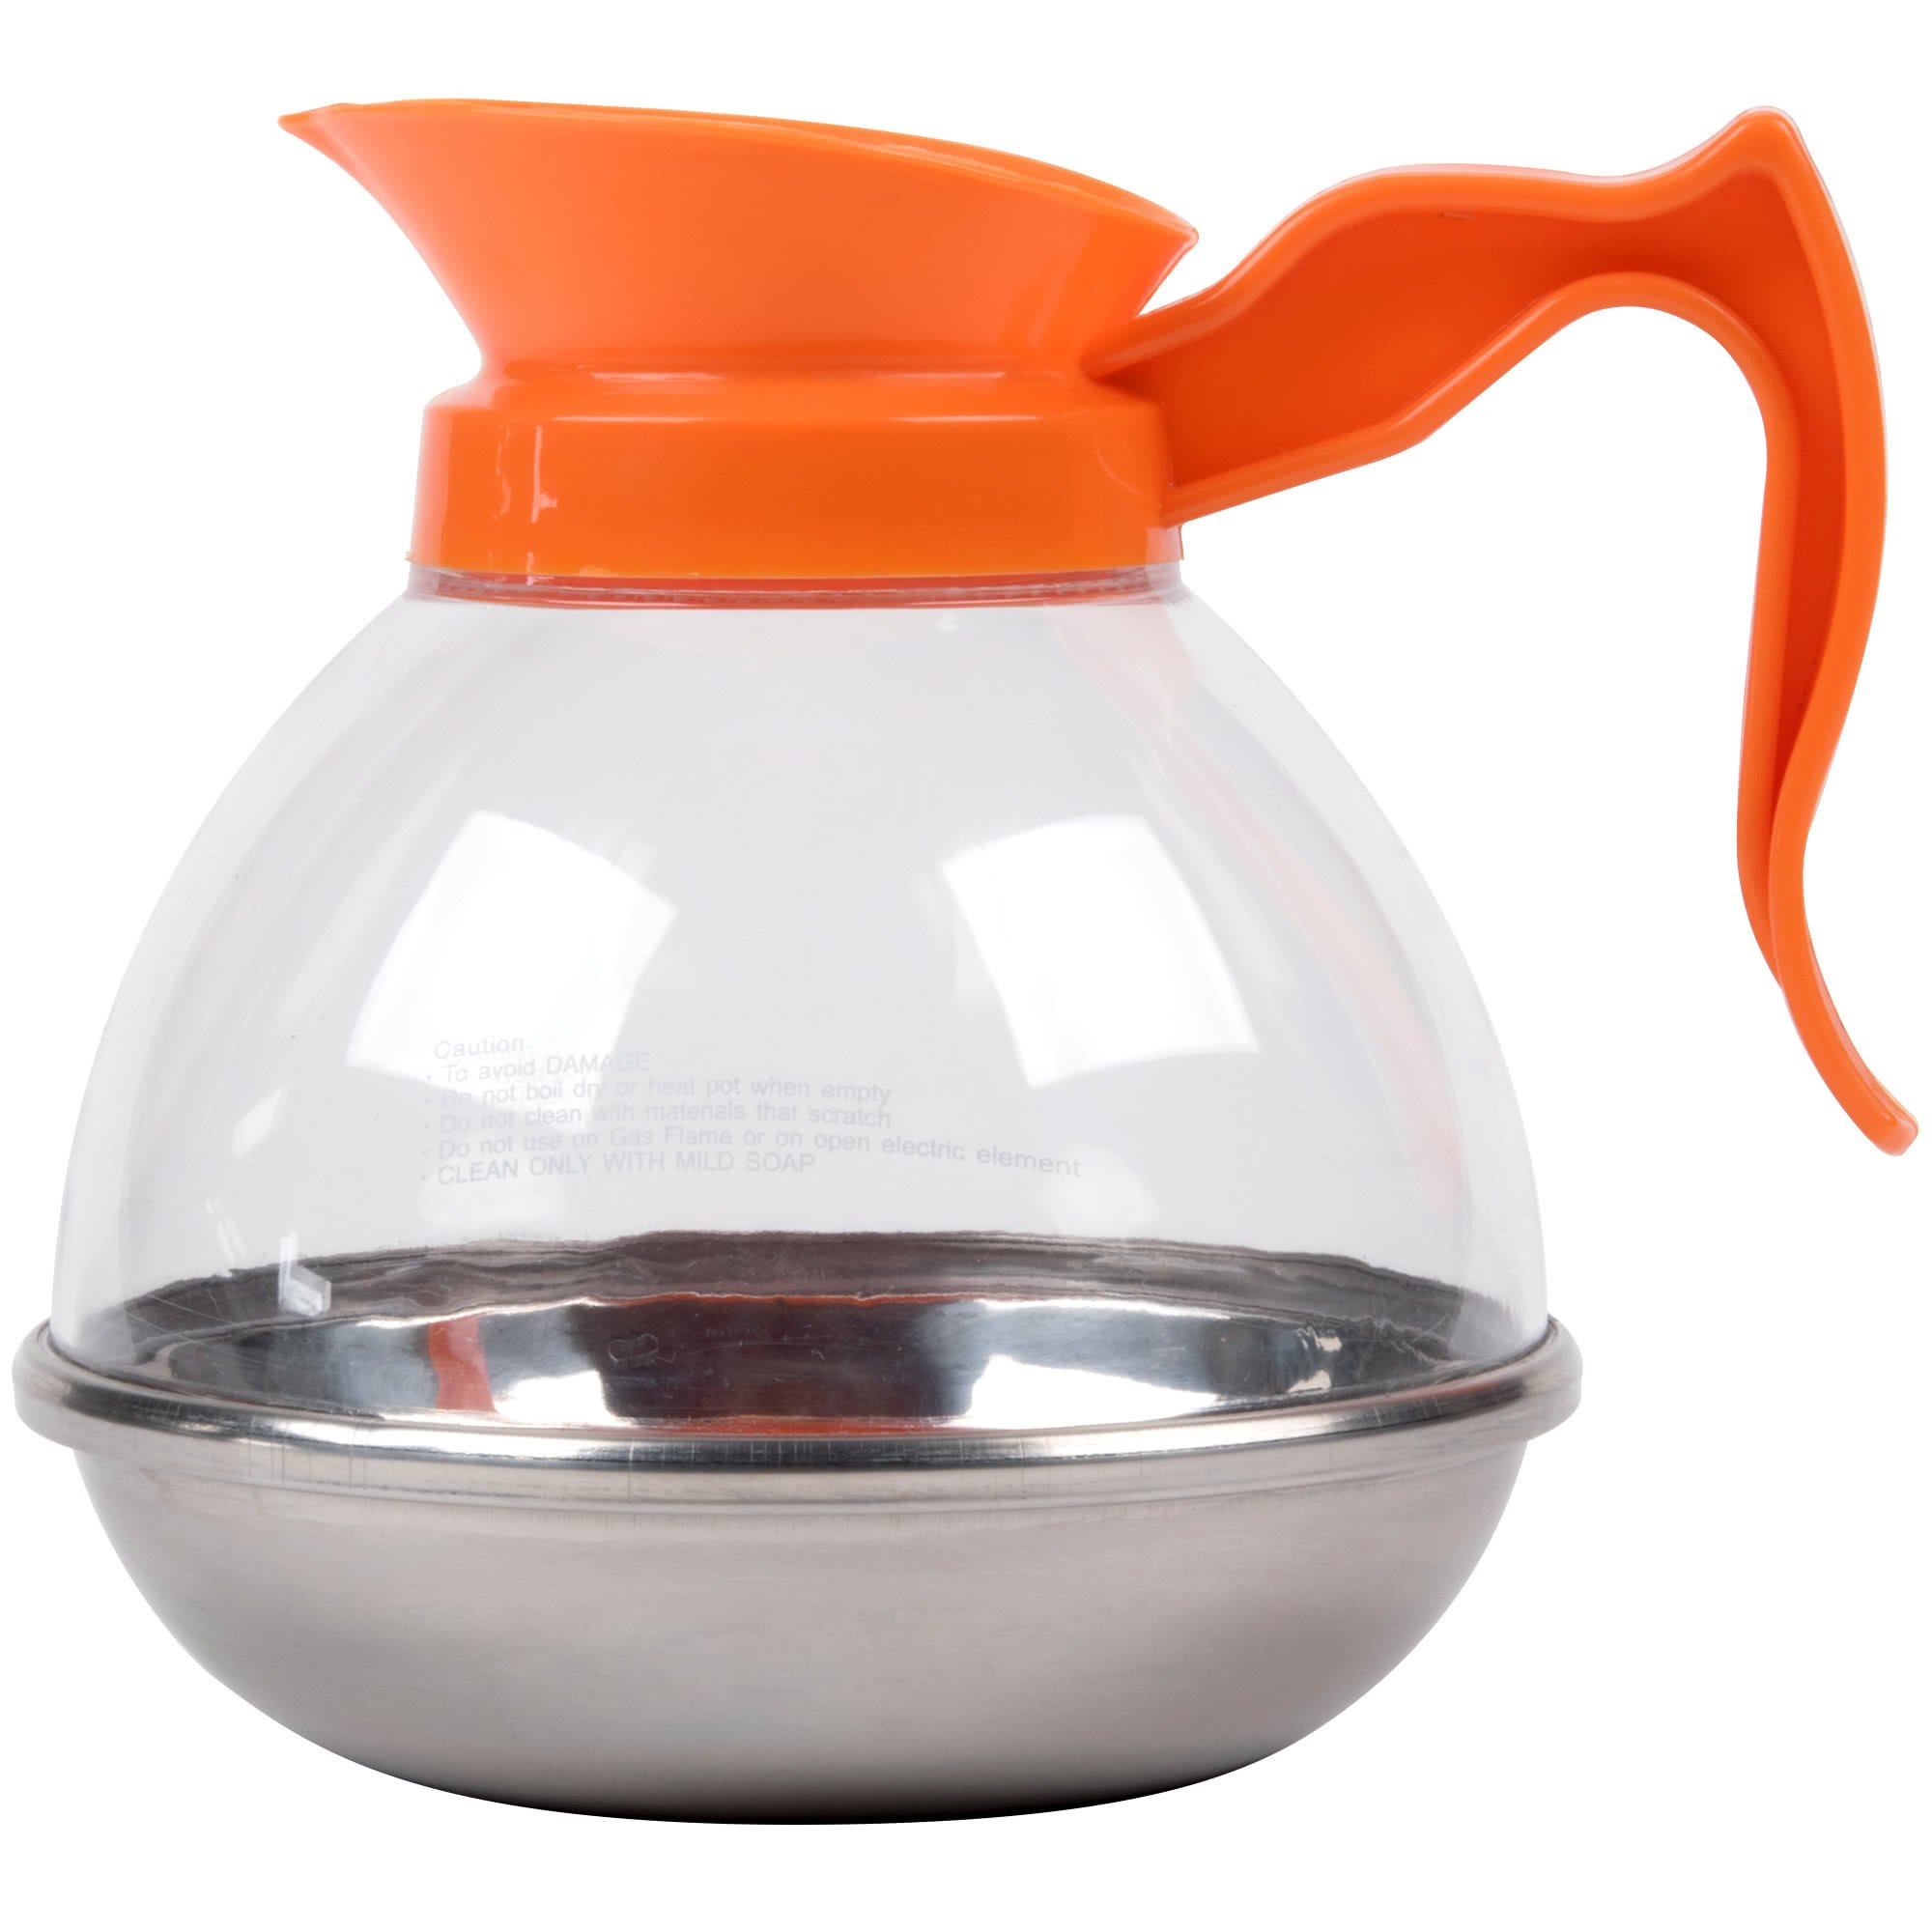 64 oz. Polycarbonate Decaf Coffee Decanter with Stainless Steel Bottom and Orange Handle